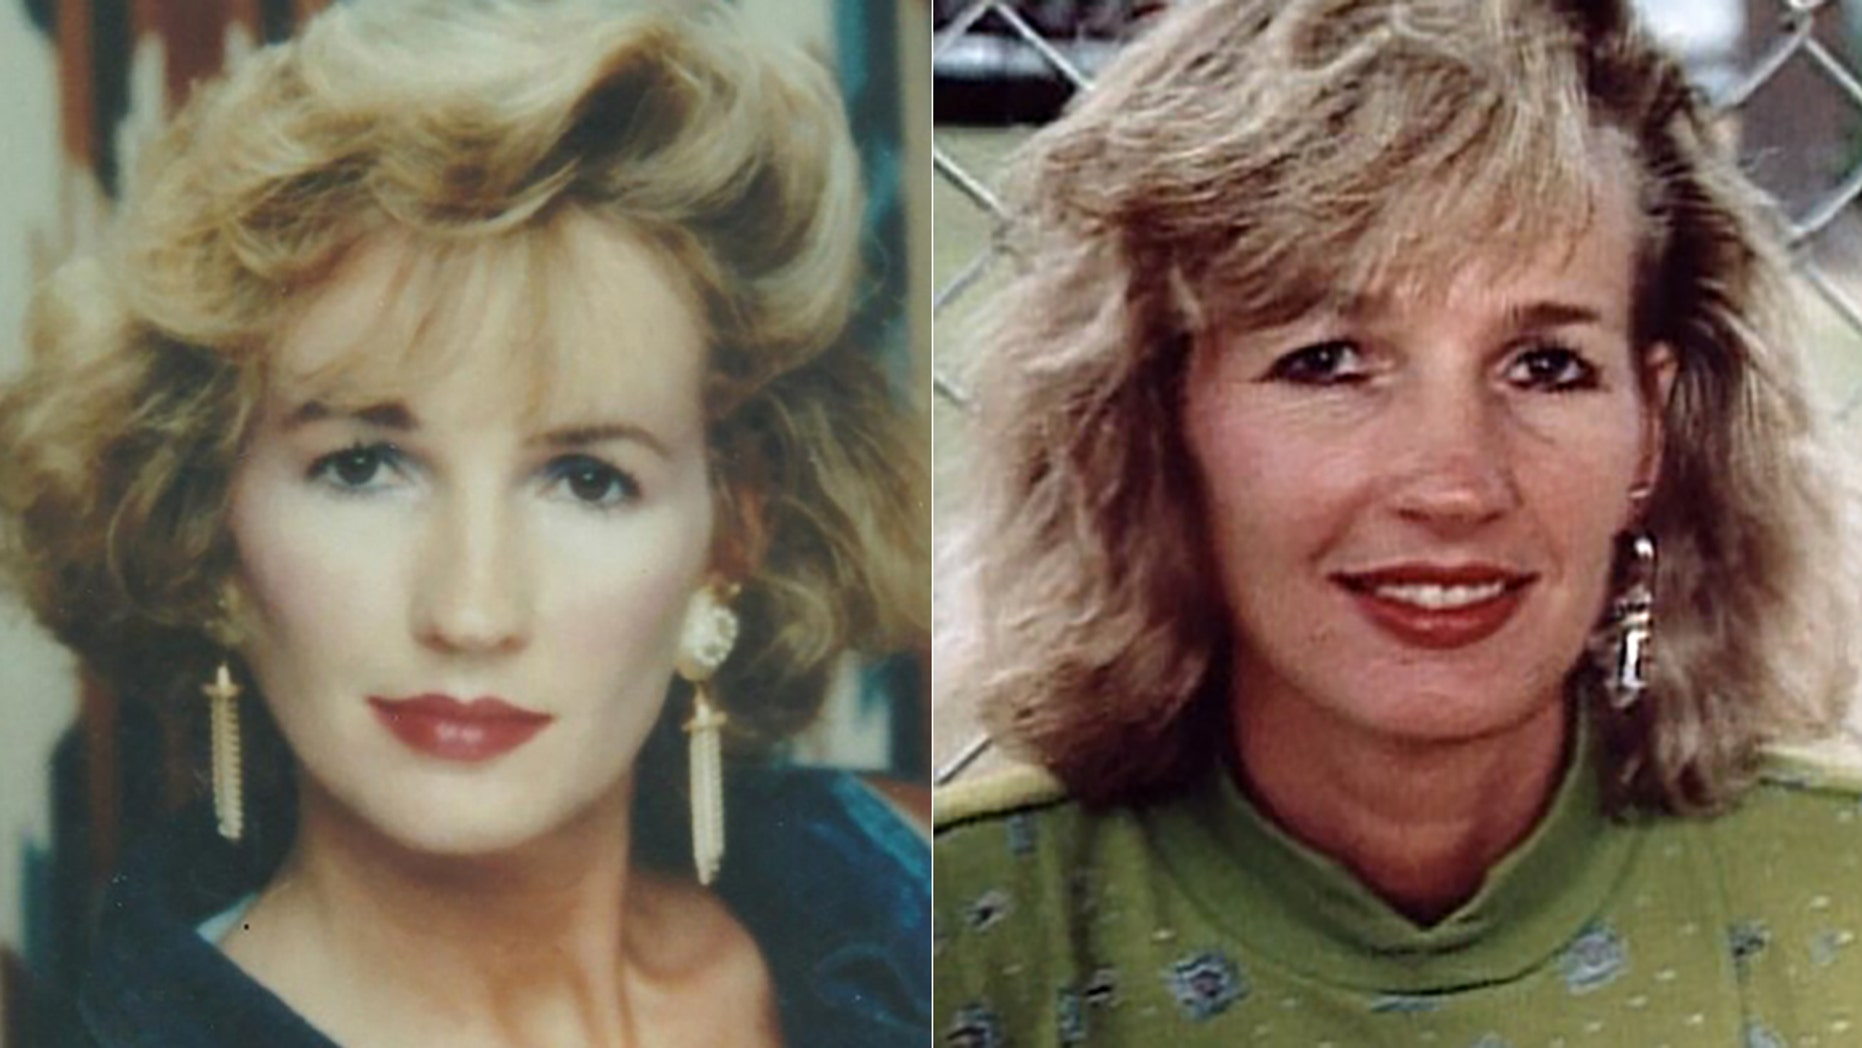 Kathy Page, 34, was murdered in May 1991.